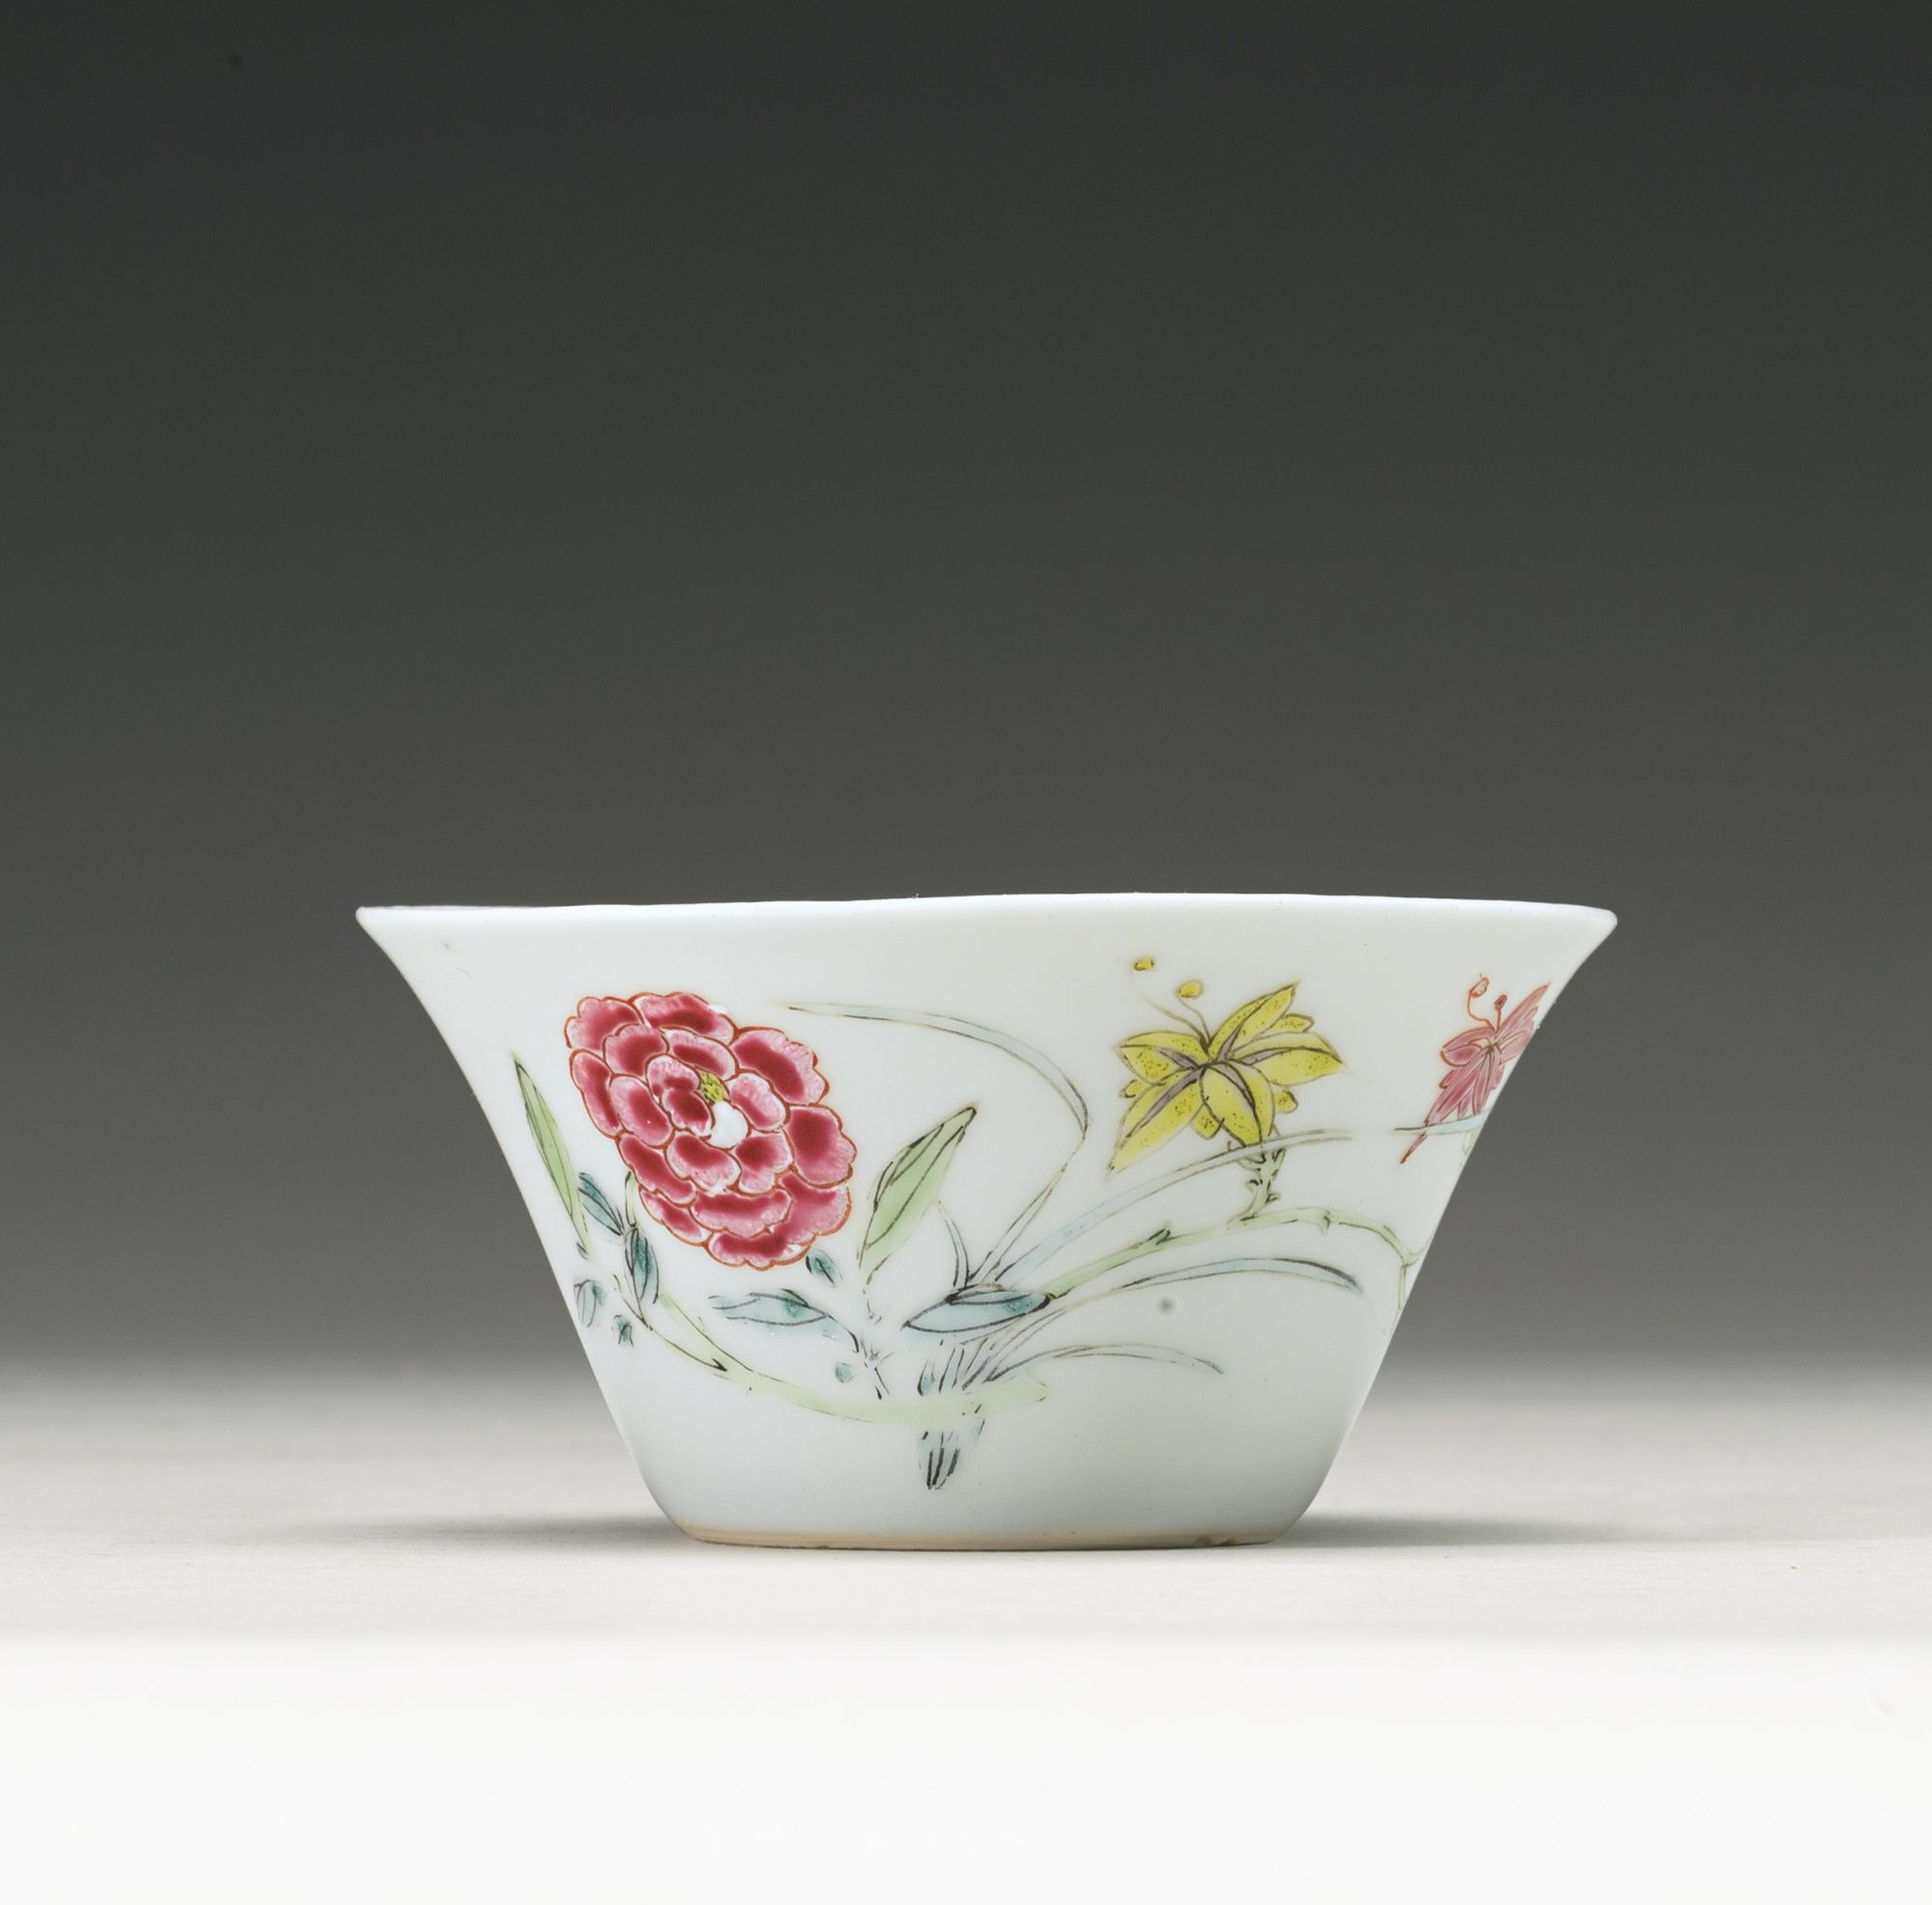 A FAMILLE-ROSE ENAMELED CUPYONGZHENG MARK AND PERIOD thinly potted with a flared rim, the sides delicately painted in pastel enamels with a peony spray, day lilies and a detached chrysanthemum, together with a butterfly, the interior with one floral spray, six-character mark in underglaze blue within a double circle on the indented base Diameter 3 3/8 in